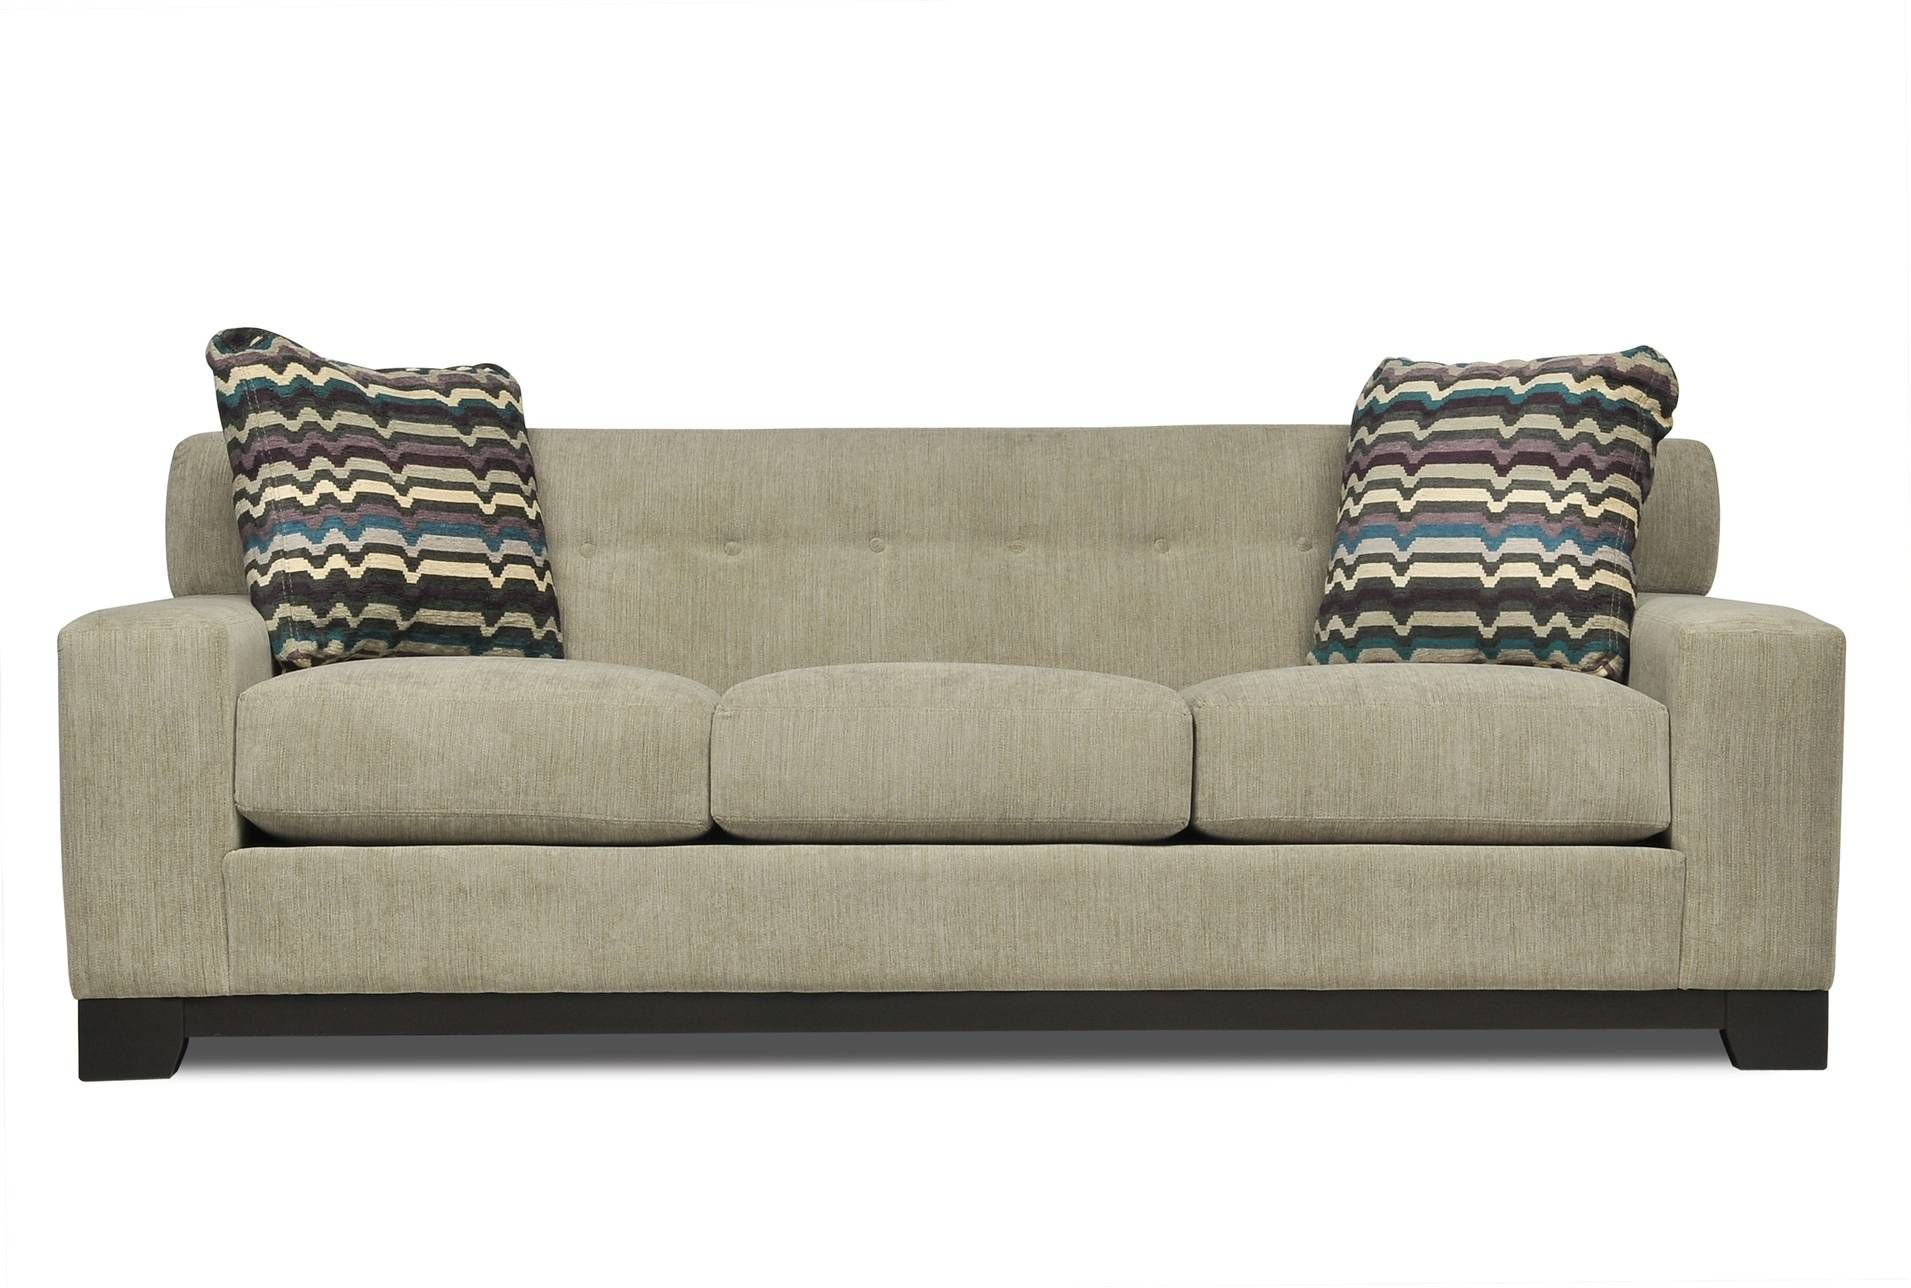 Rory Sofa – Deep Sofa W/ Comfy Fabric Material! | Home | Decor For Rory Sofa Chairs (View 10 of 25)